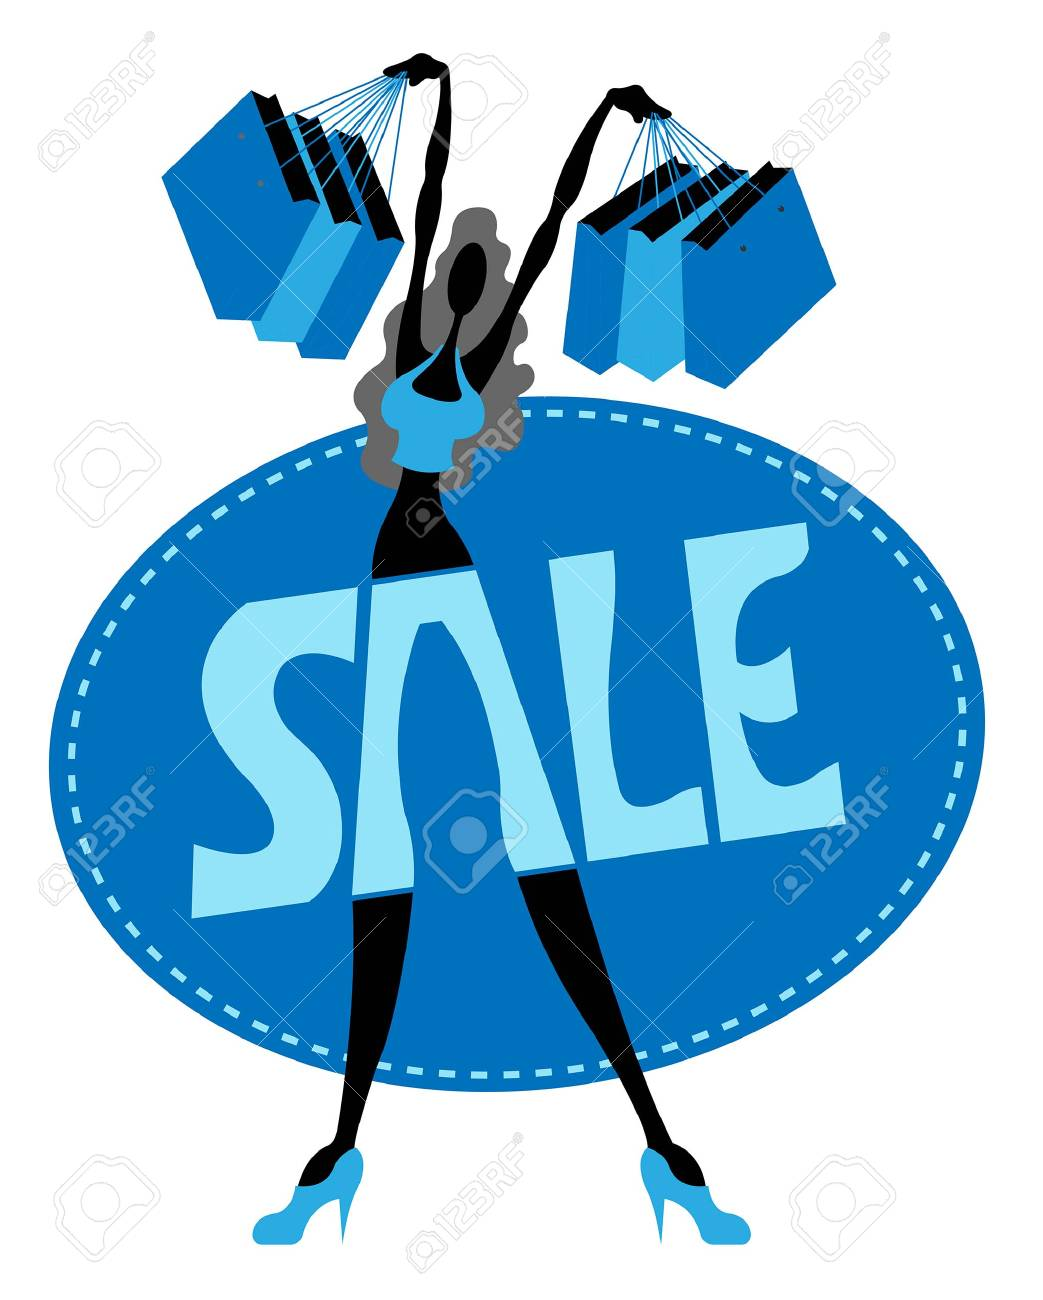 Sale logo with shopaholic silhouette and fabric symbol  All fonts